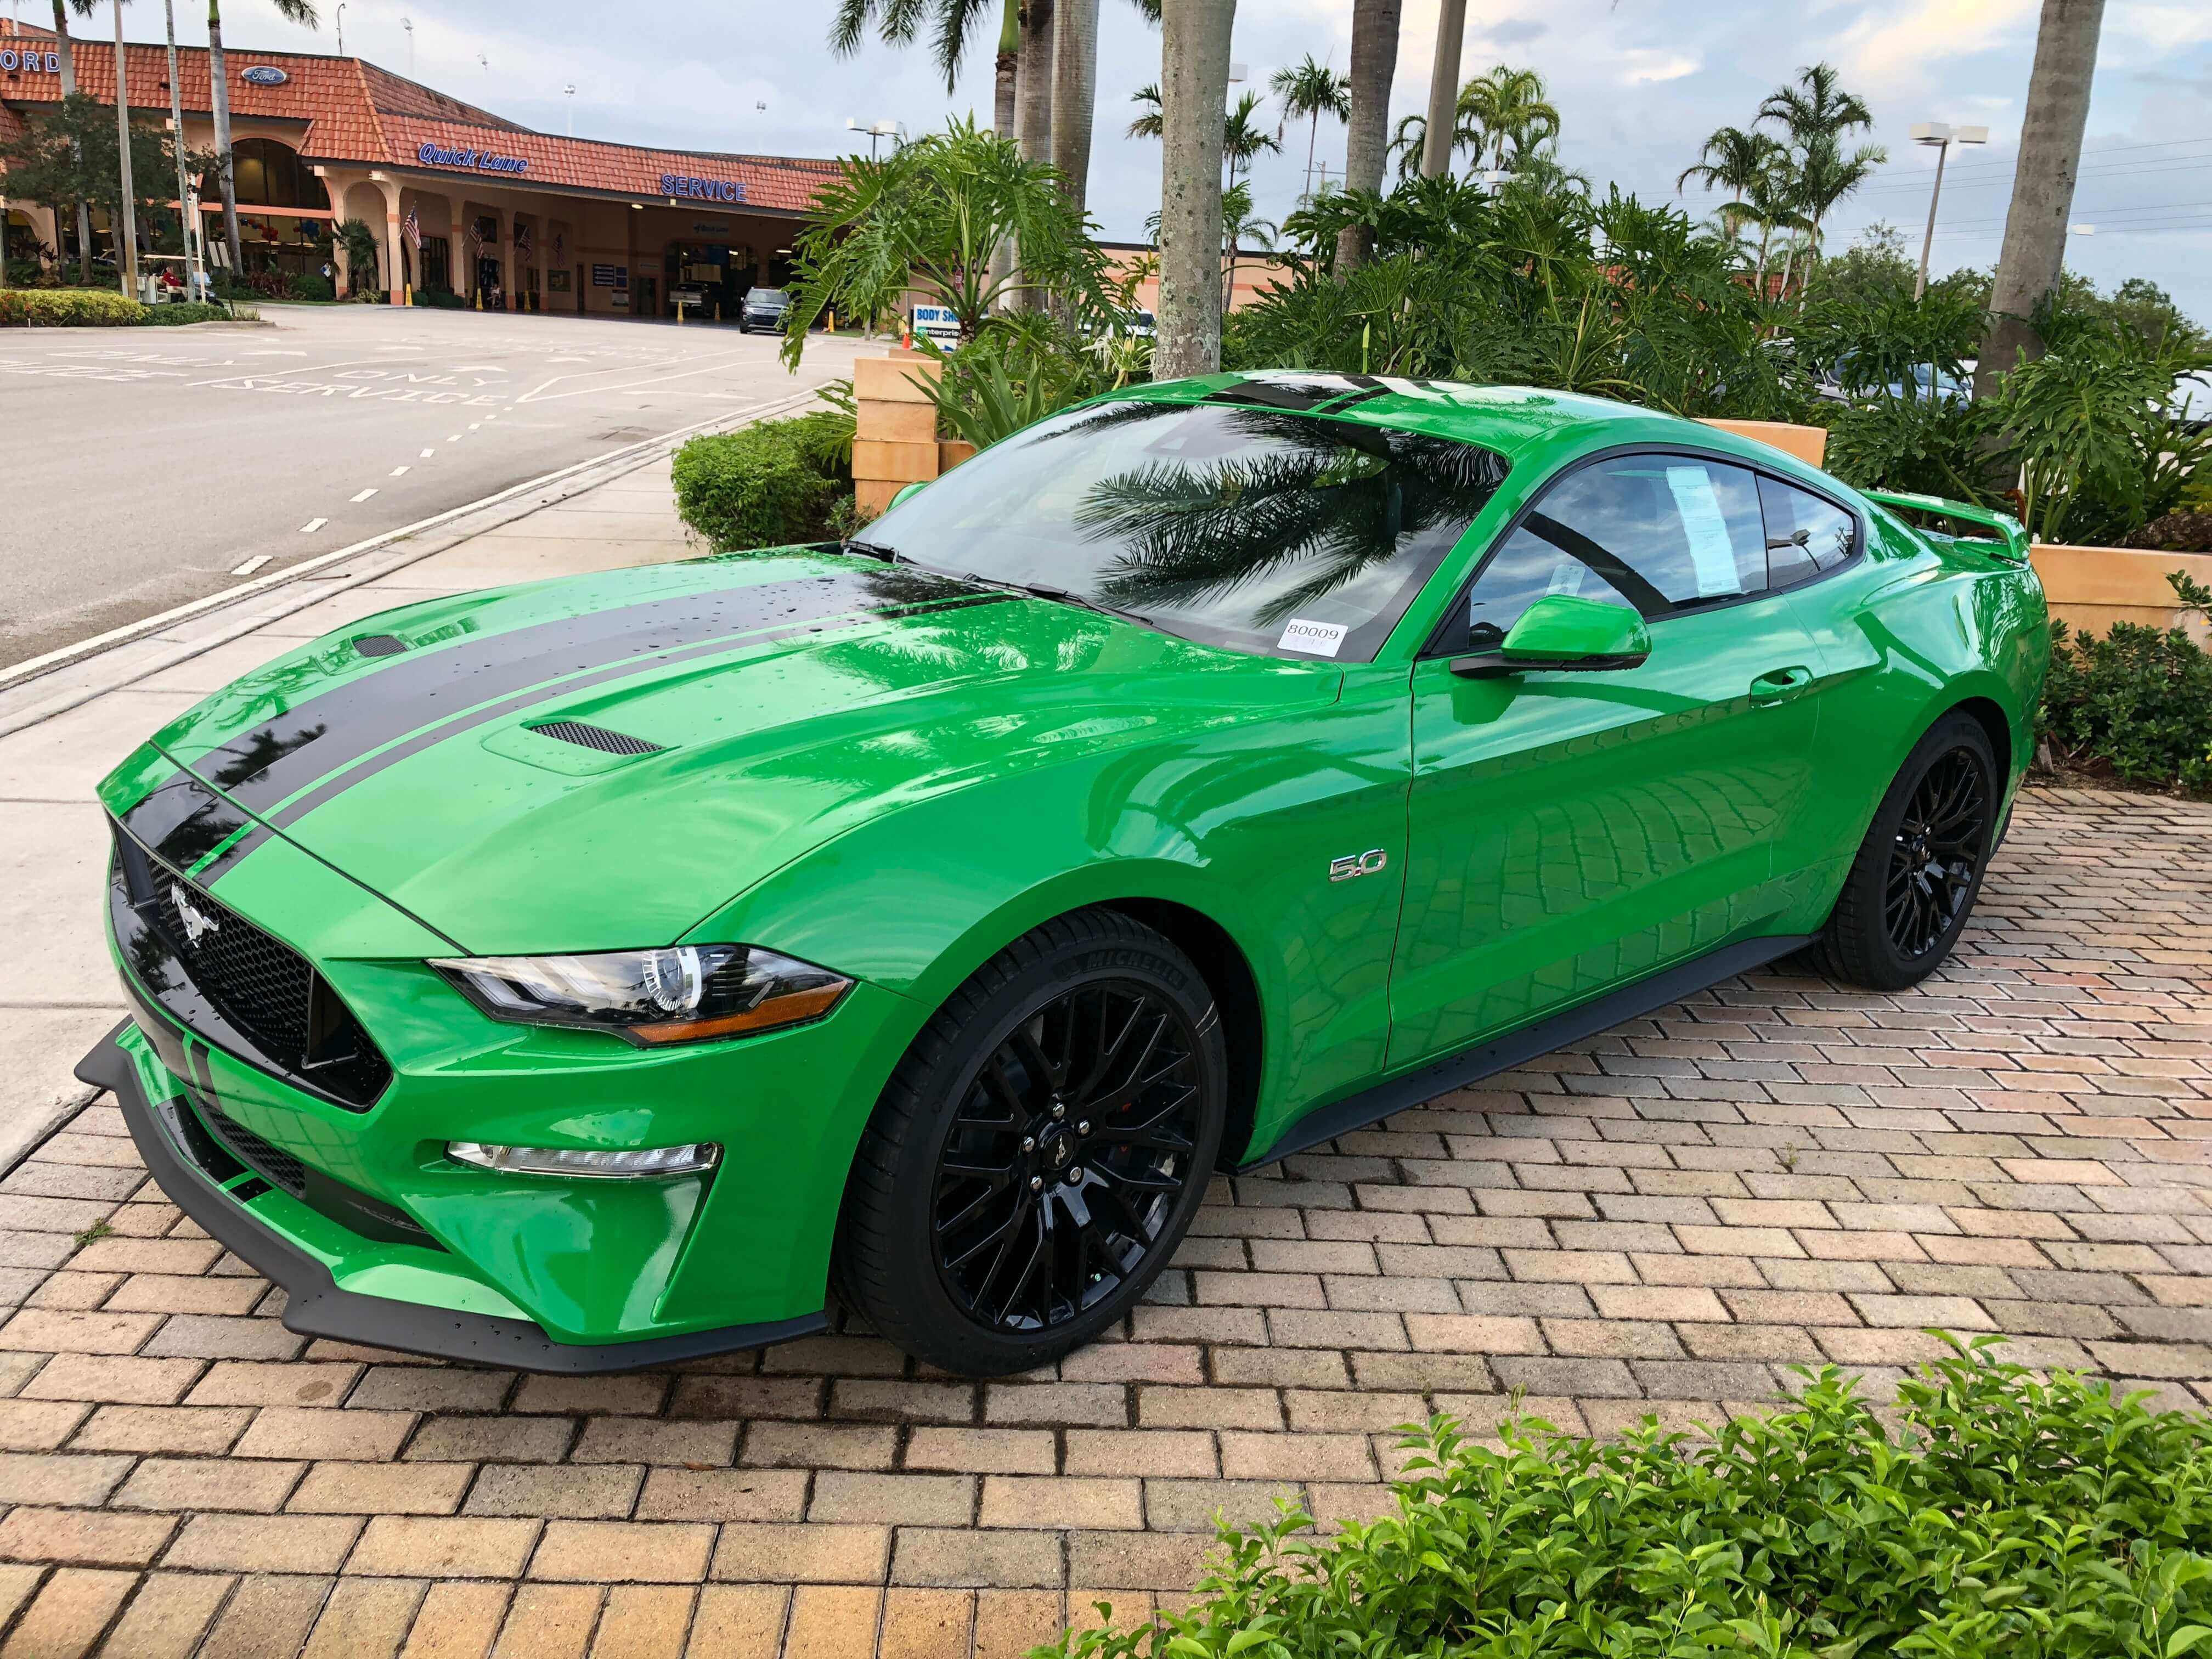 79 Concept of 2019 Ford Mustang Colors Performance by 2019 Ford Mustang Colors